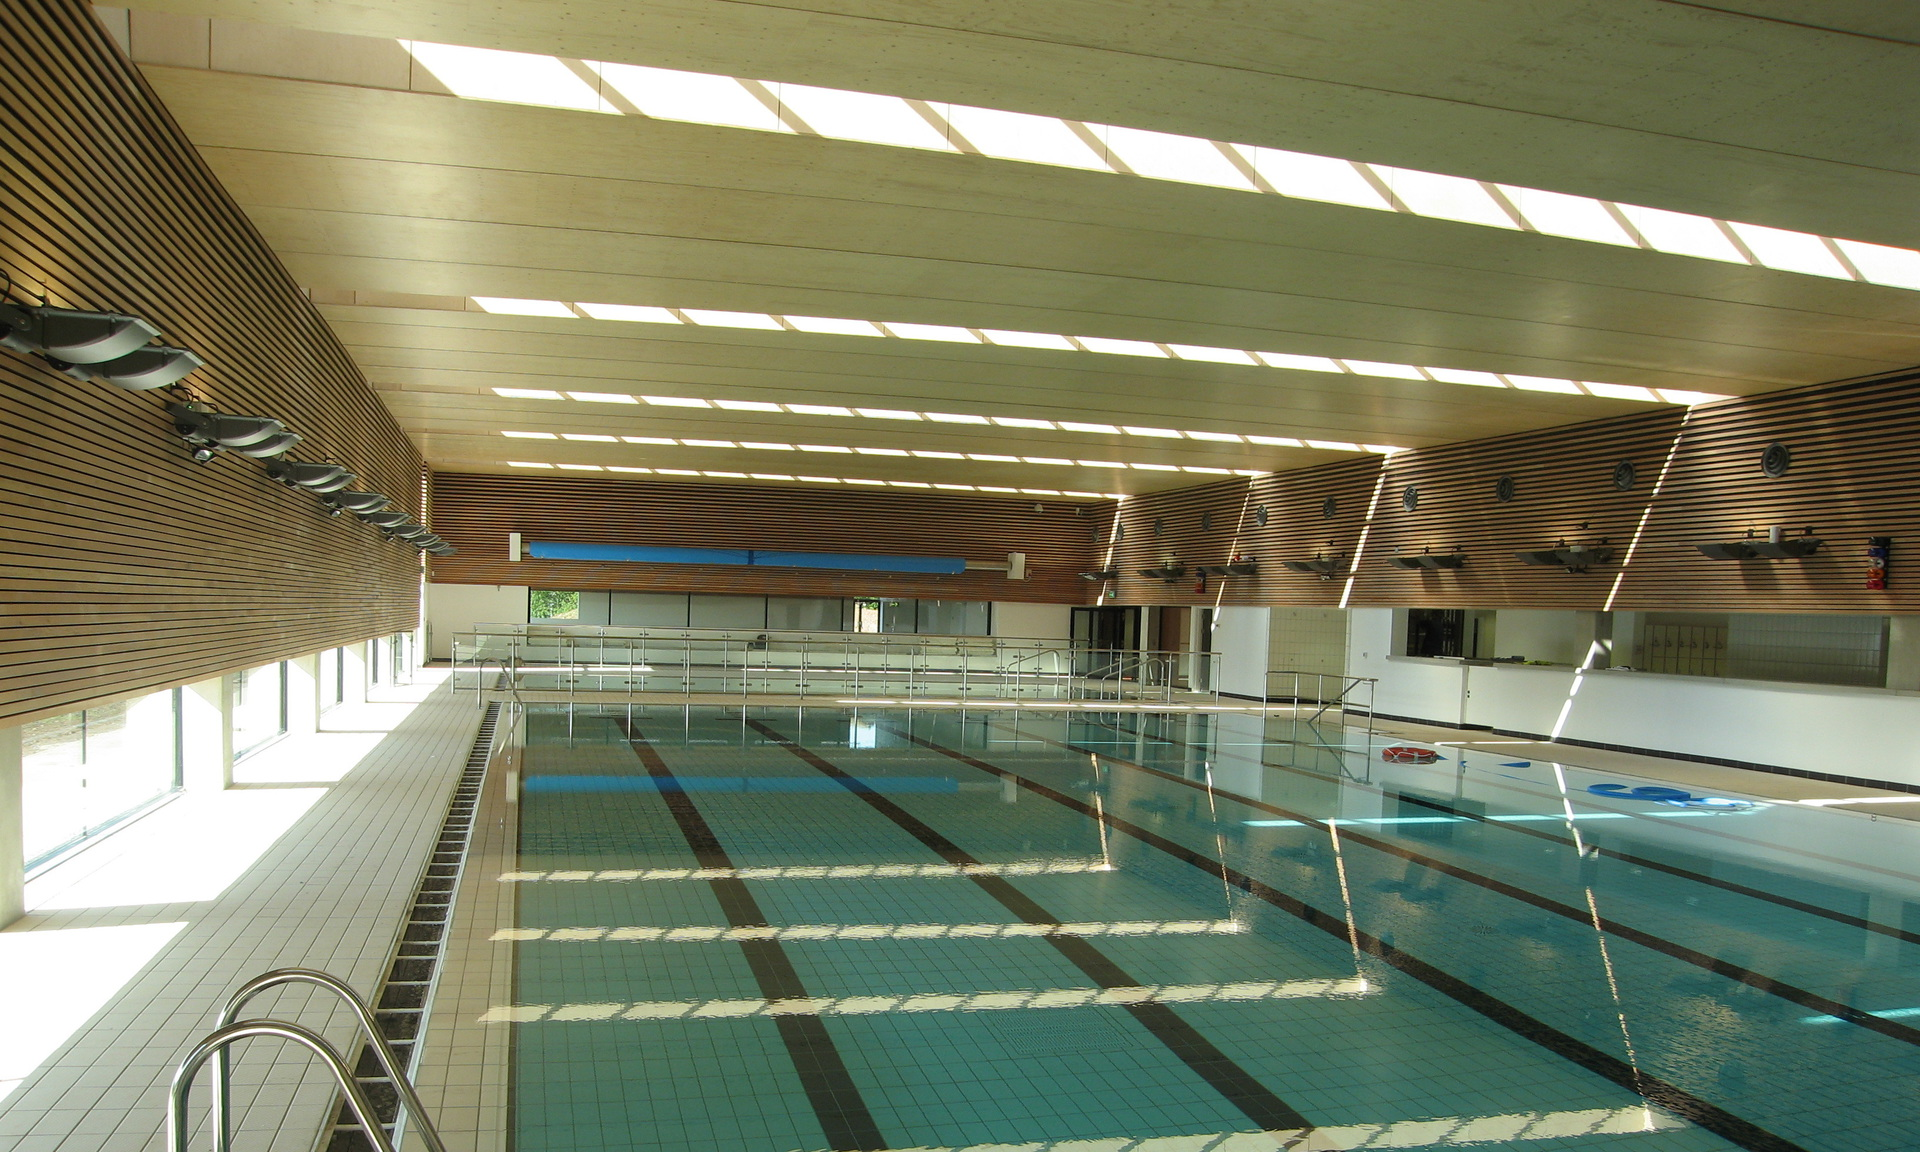 chelmsley wood swimming baths opening times sport inpiration gallery